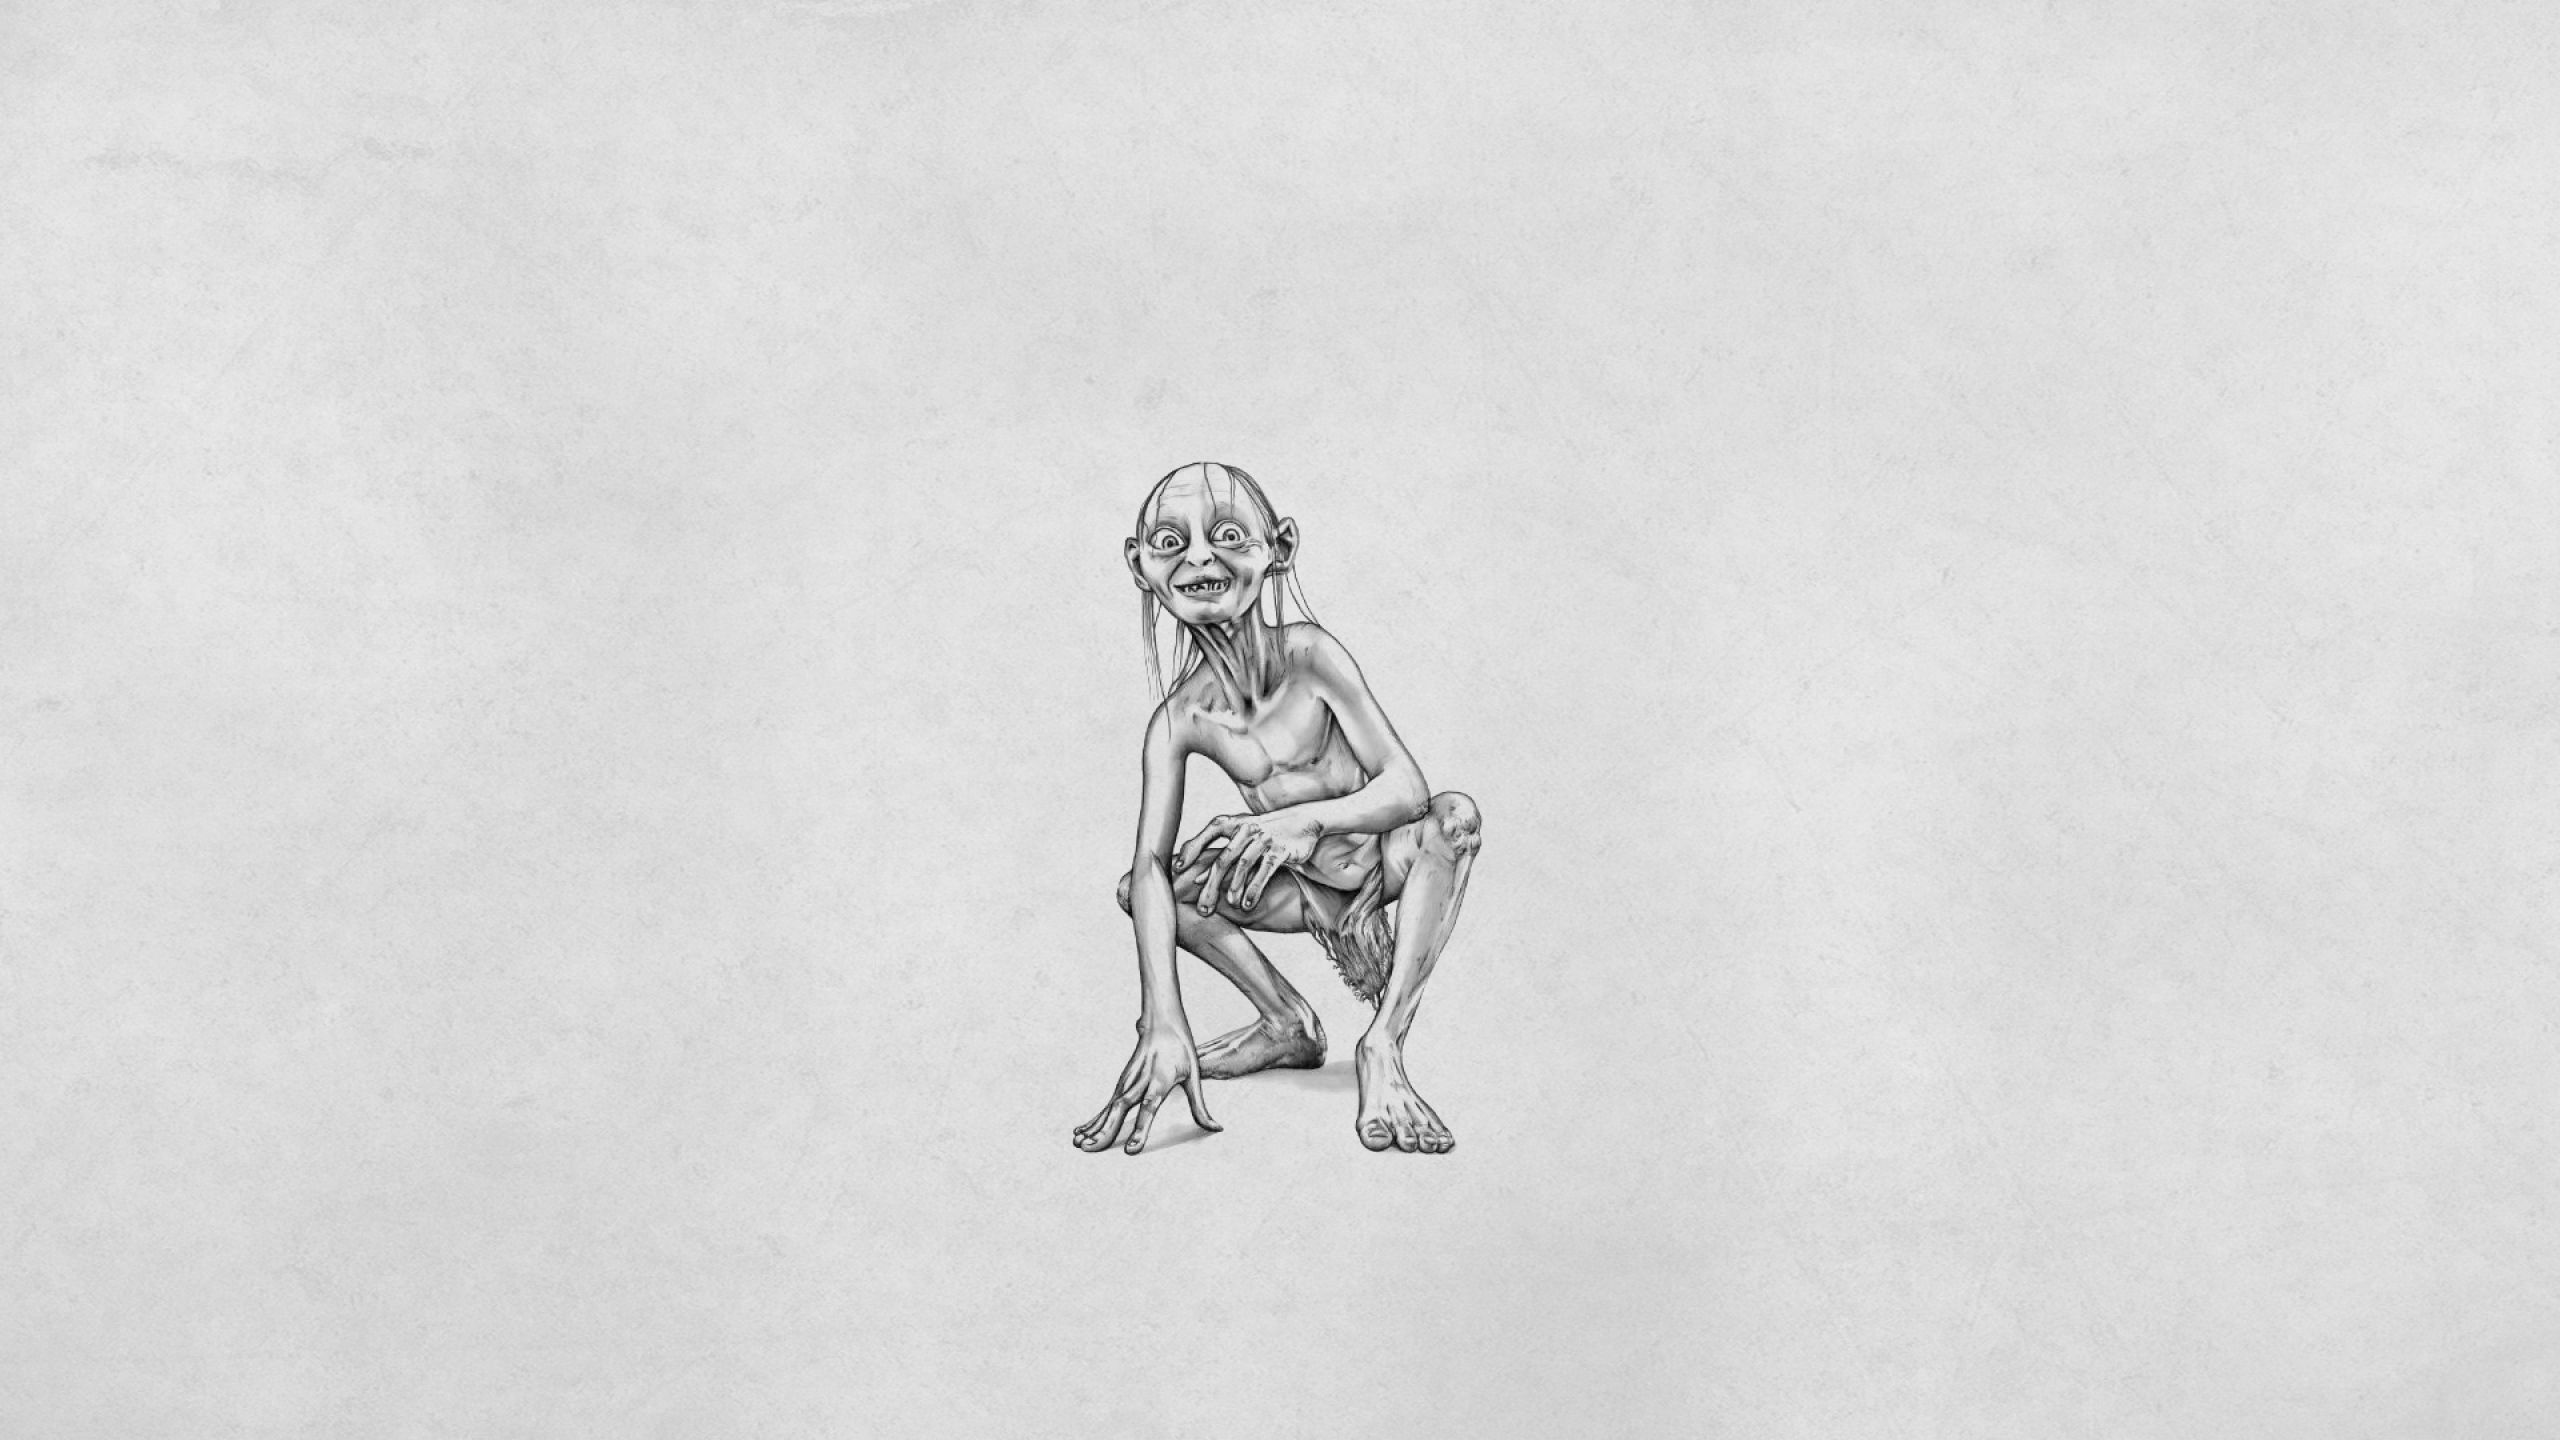 the_lord_of_the_rings_gollum_white_background_minimalism_90514_2560x1440.jpg (JPEG-Grafik, 2560 × 1440 Pixel) - Skaliert (54%)